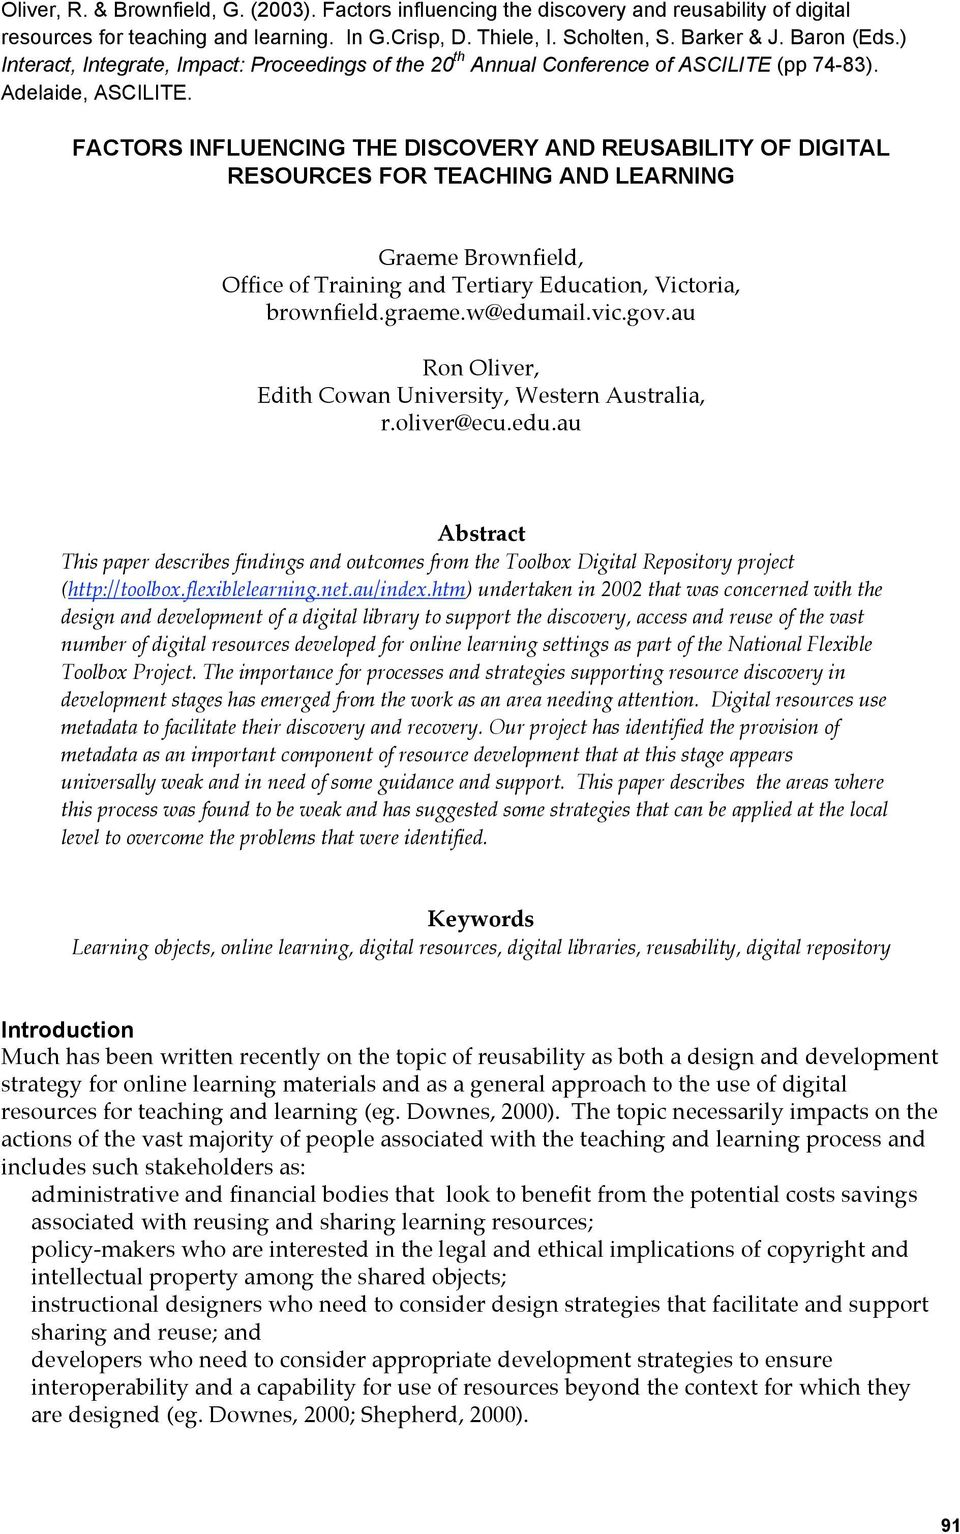 FACTORS INFLUENCING THE DISCOVERY AND REUSABILITY OF DIGITAL RESOURCES FOR TEACHING AND LEARNING Graeme Brownfield, Office of Training and Tertiary Education, Victoria, brownfield.graeme.w@edumail.